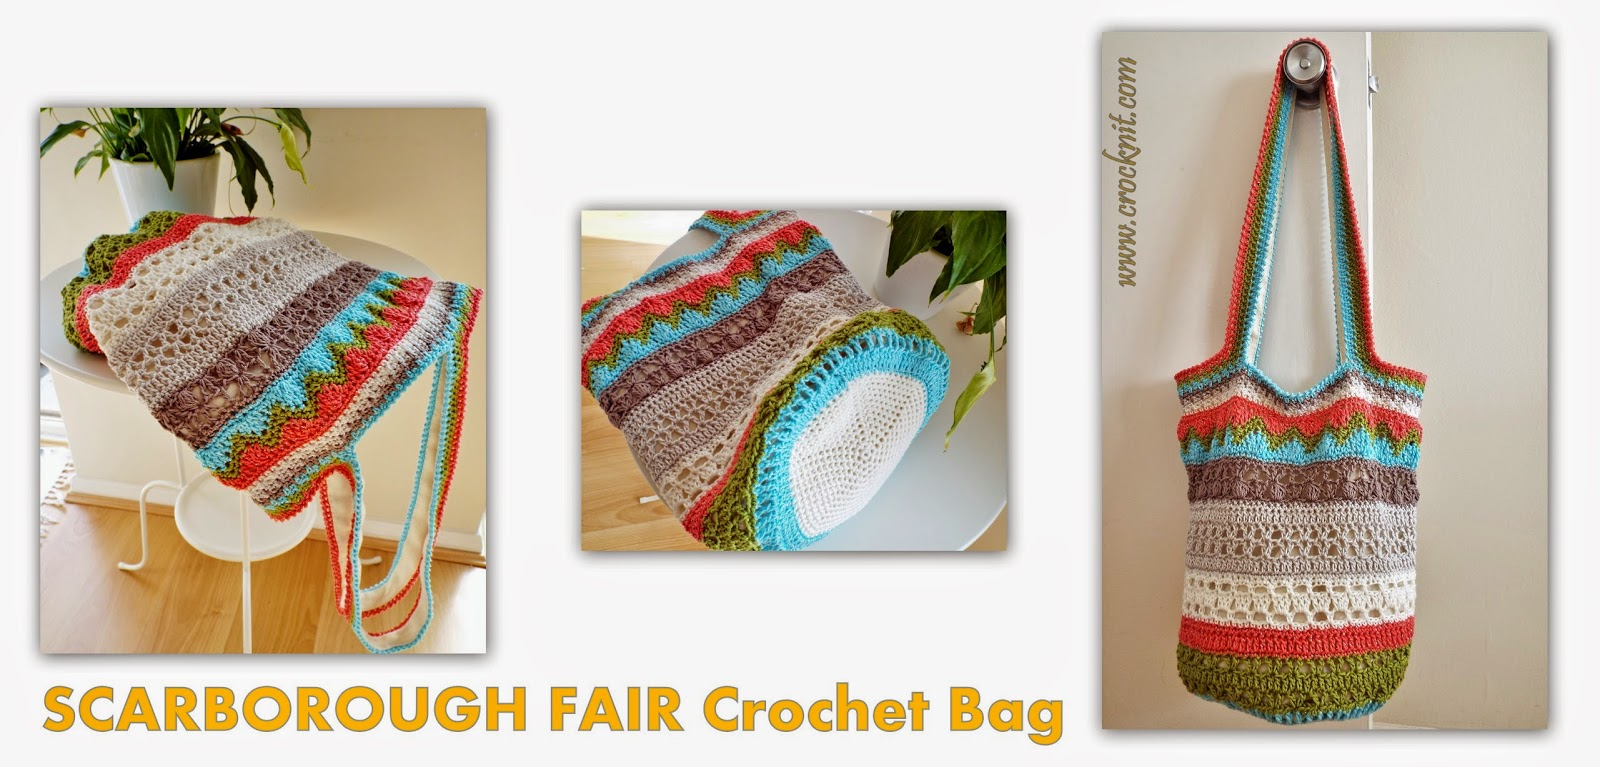 crochet patterns, how to crochet, bags, totes, should bags,